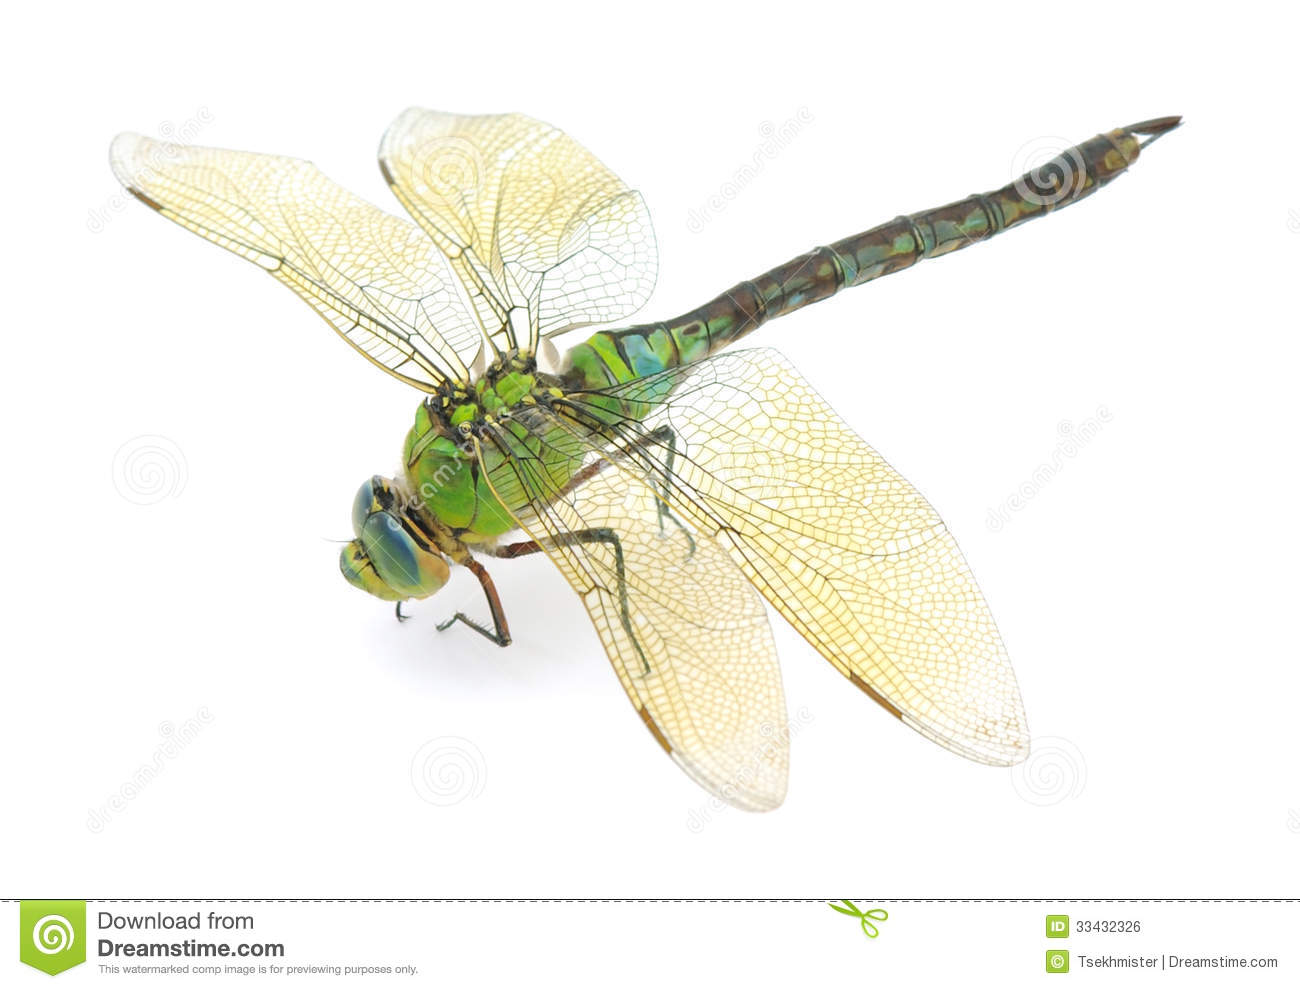 Green dragonfly pictures - photo#22